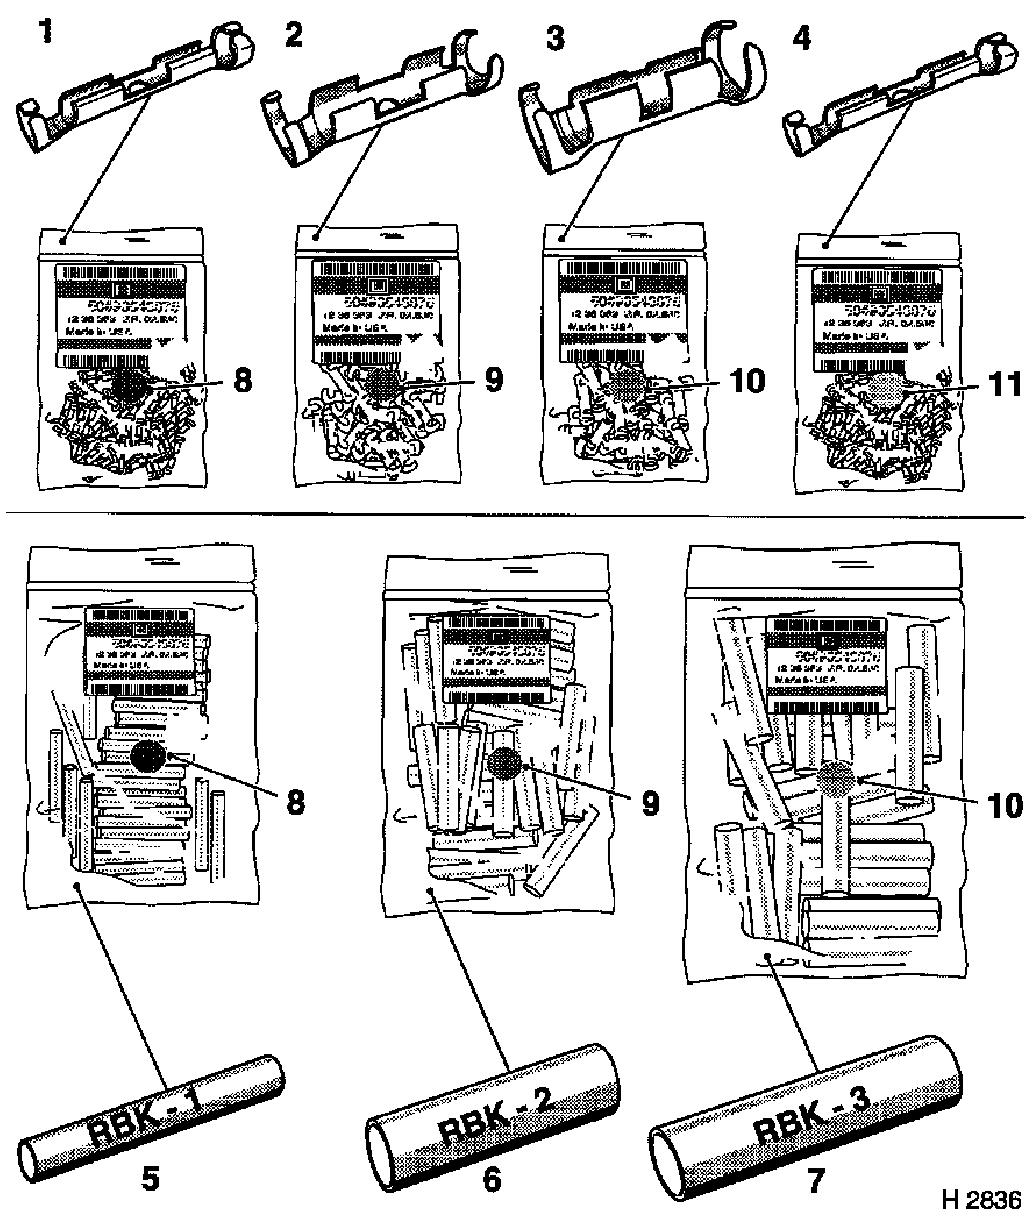 Vauxhall Workshop Manuals Astra H General Vehicle Information Water In Fuse Box Note The Shrink Down Plastic Tubes For Cable Cross Section 035 Mm 2 Are Identical To Those Sections 05 075 10 And